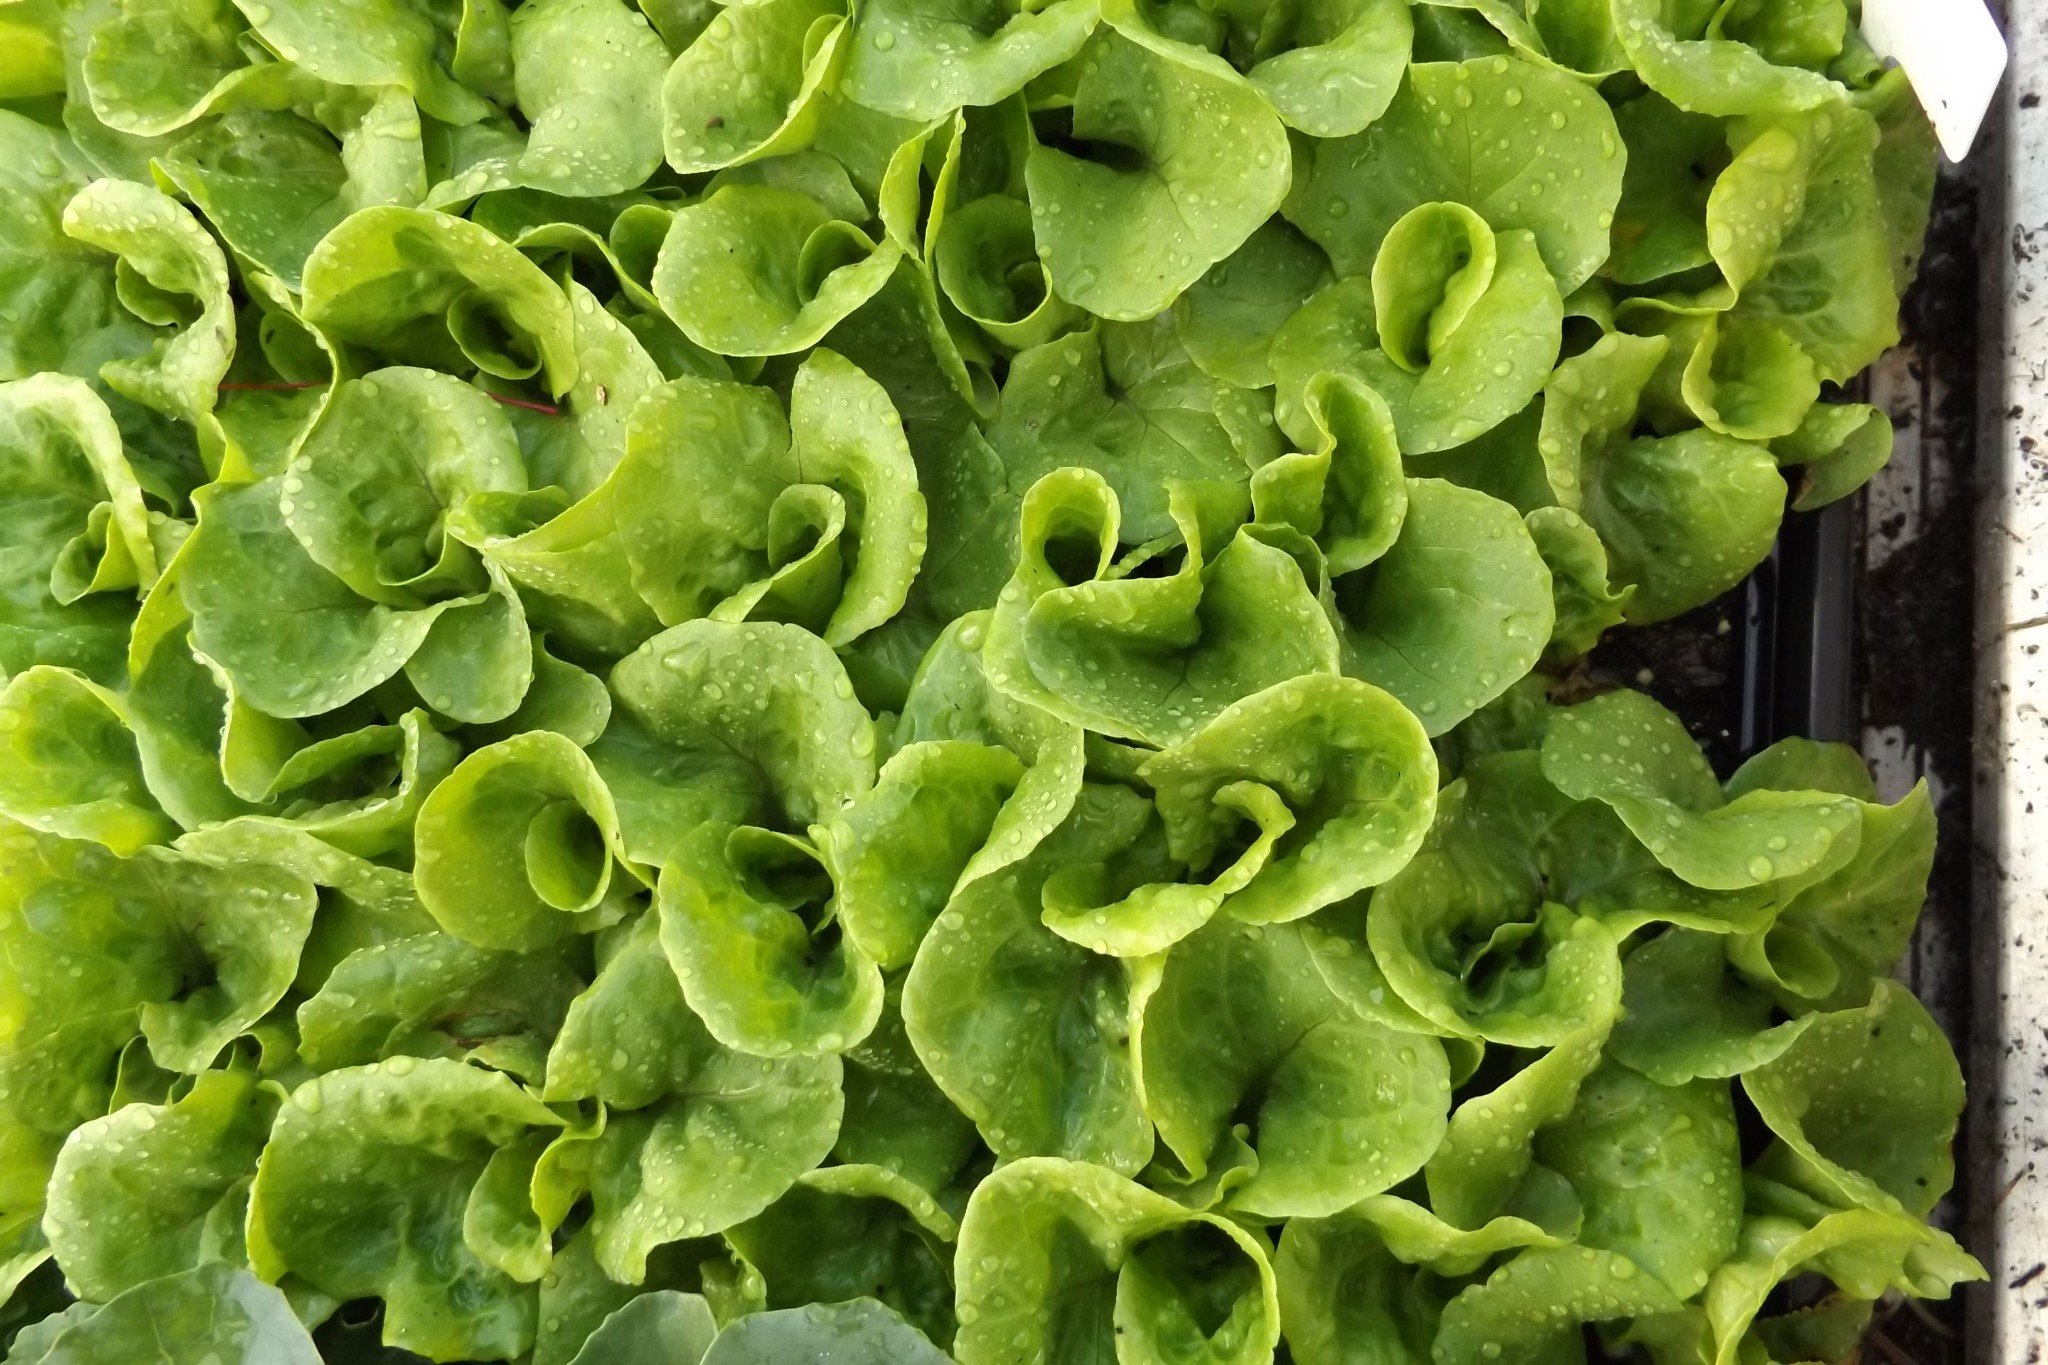 Seedlings: Lettuce varieties